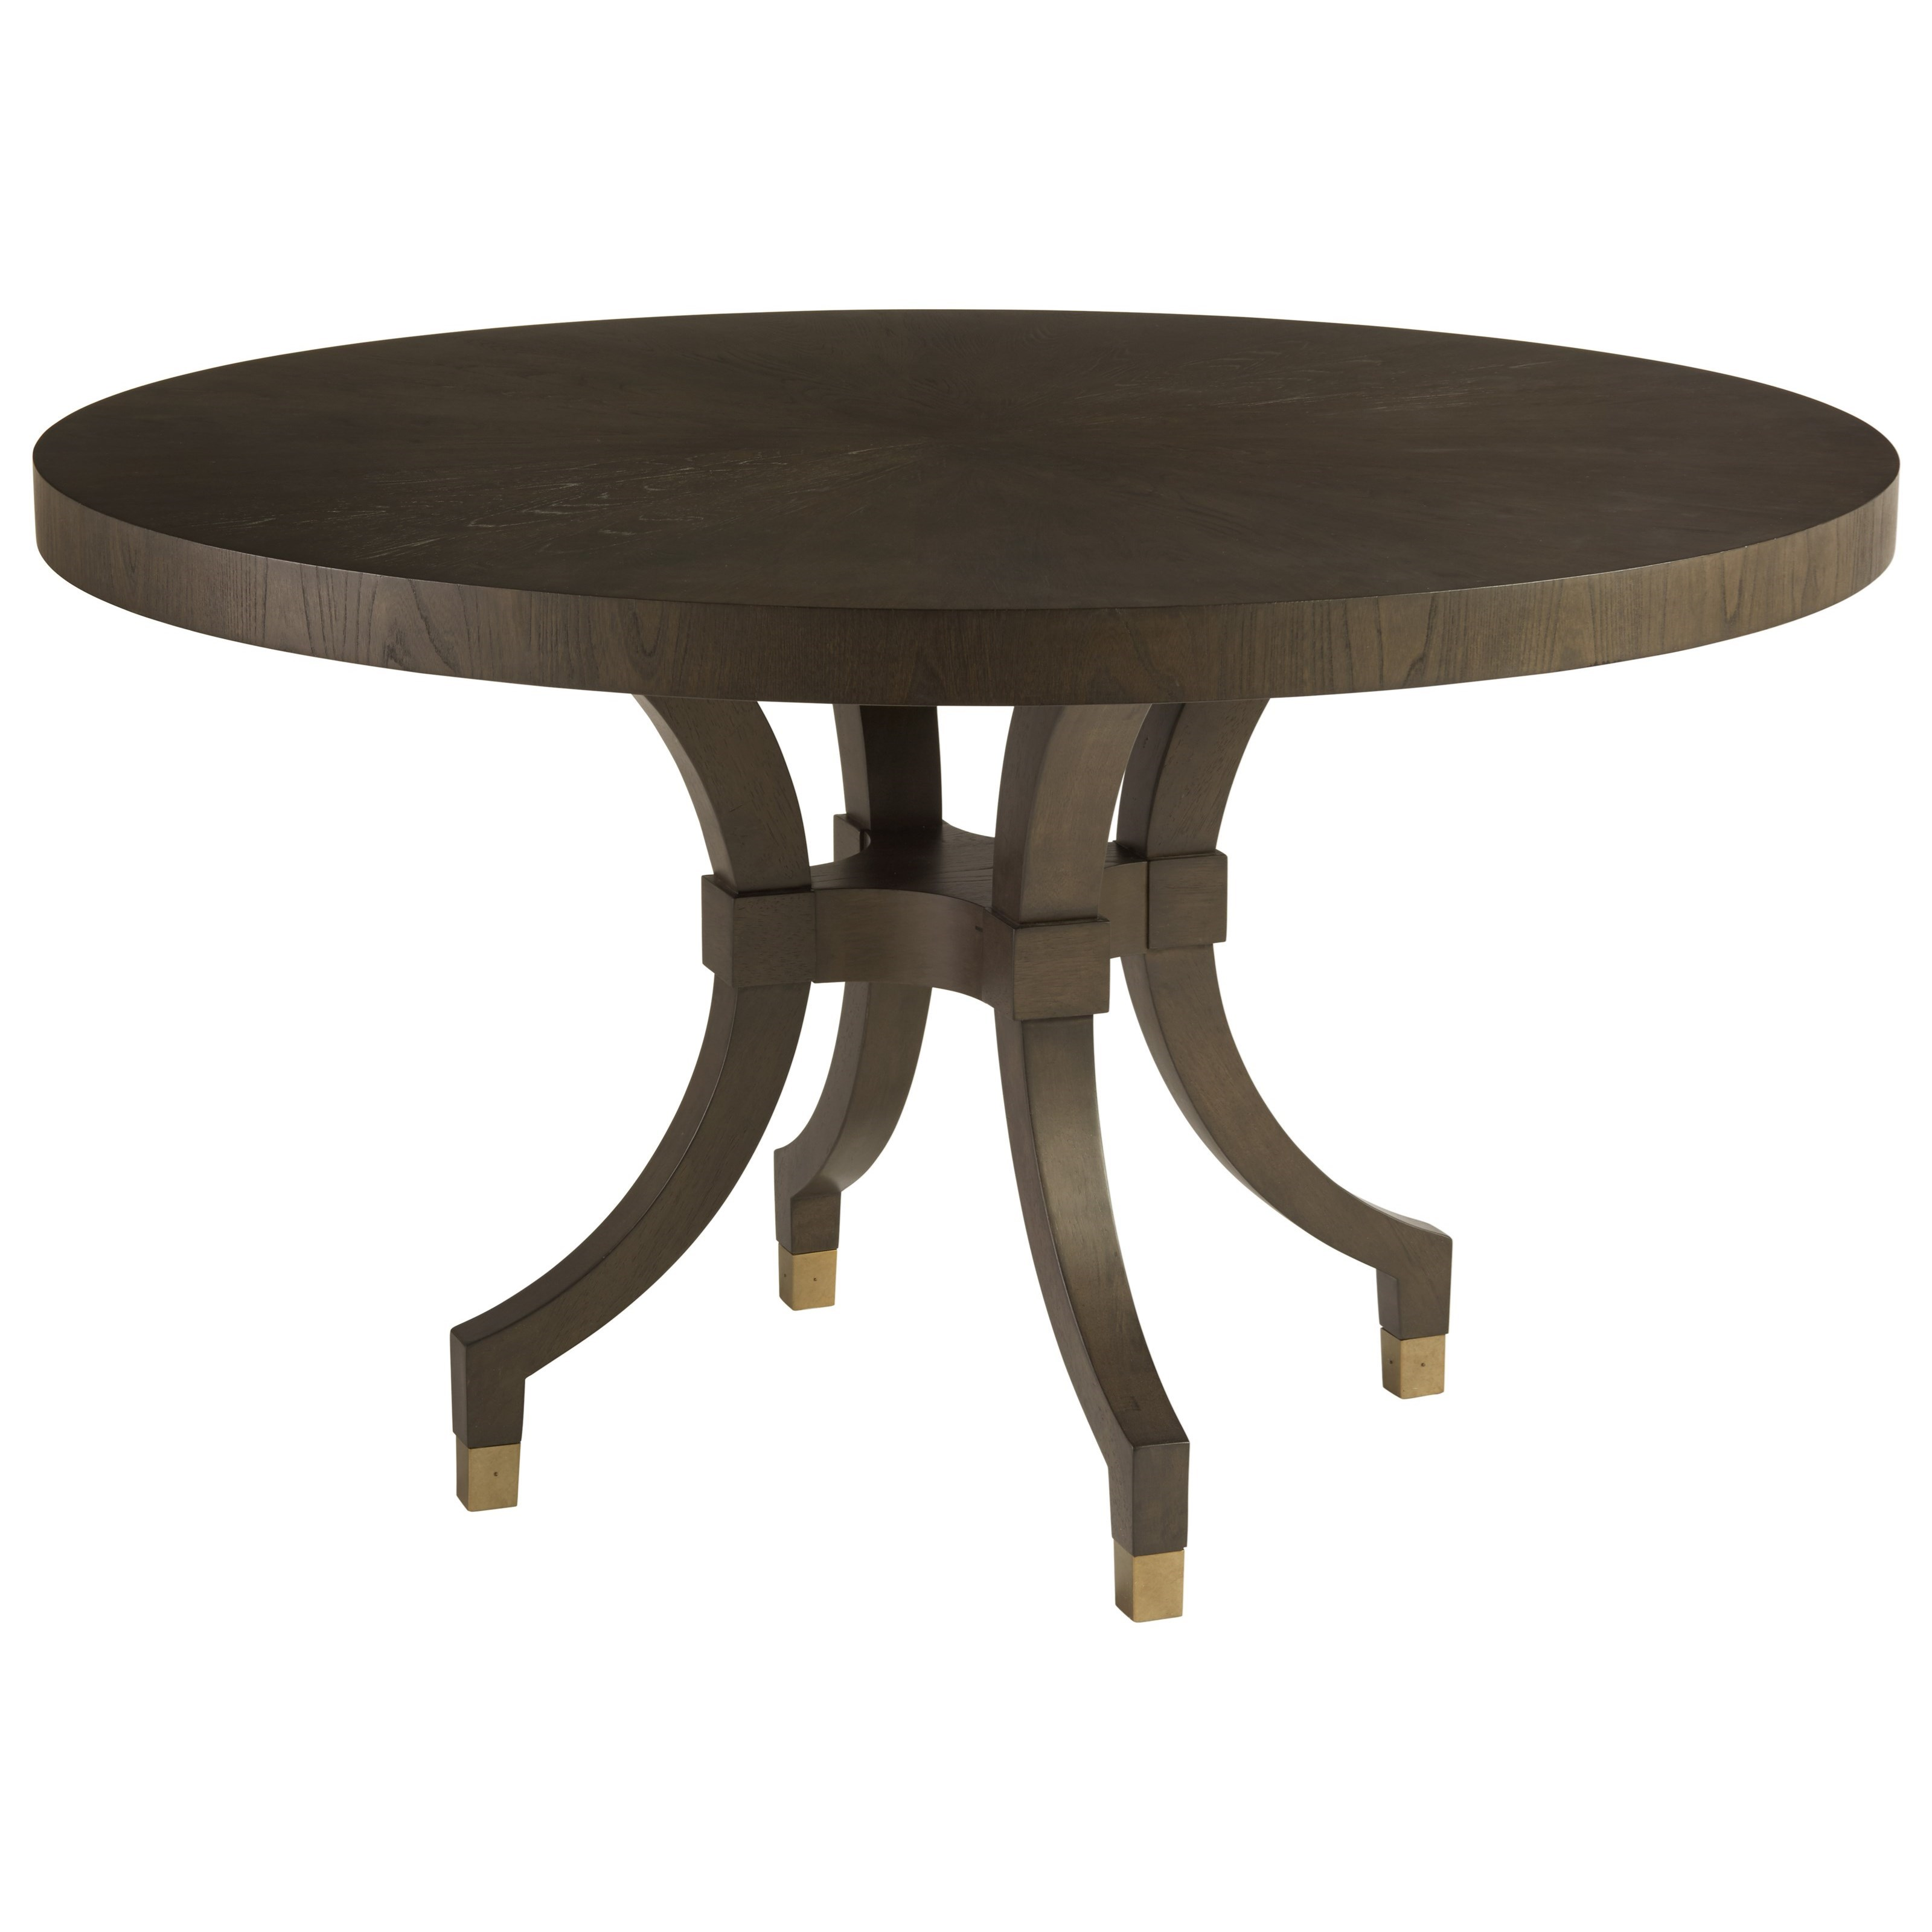 Soliloquy Ambrose Dining Table by Universal at Zak's Home